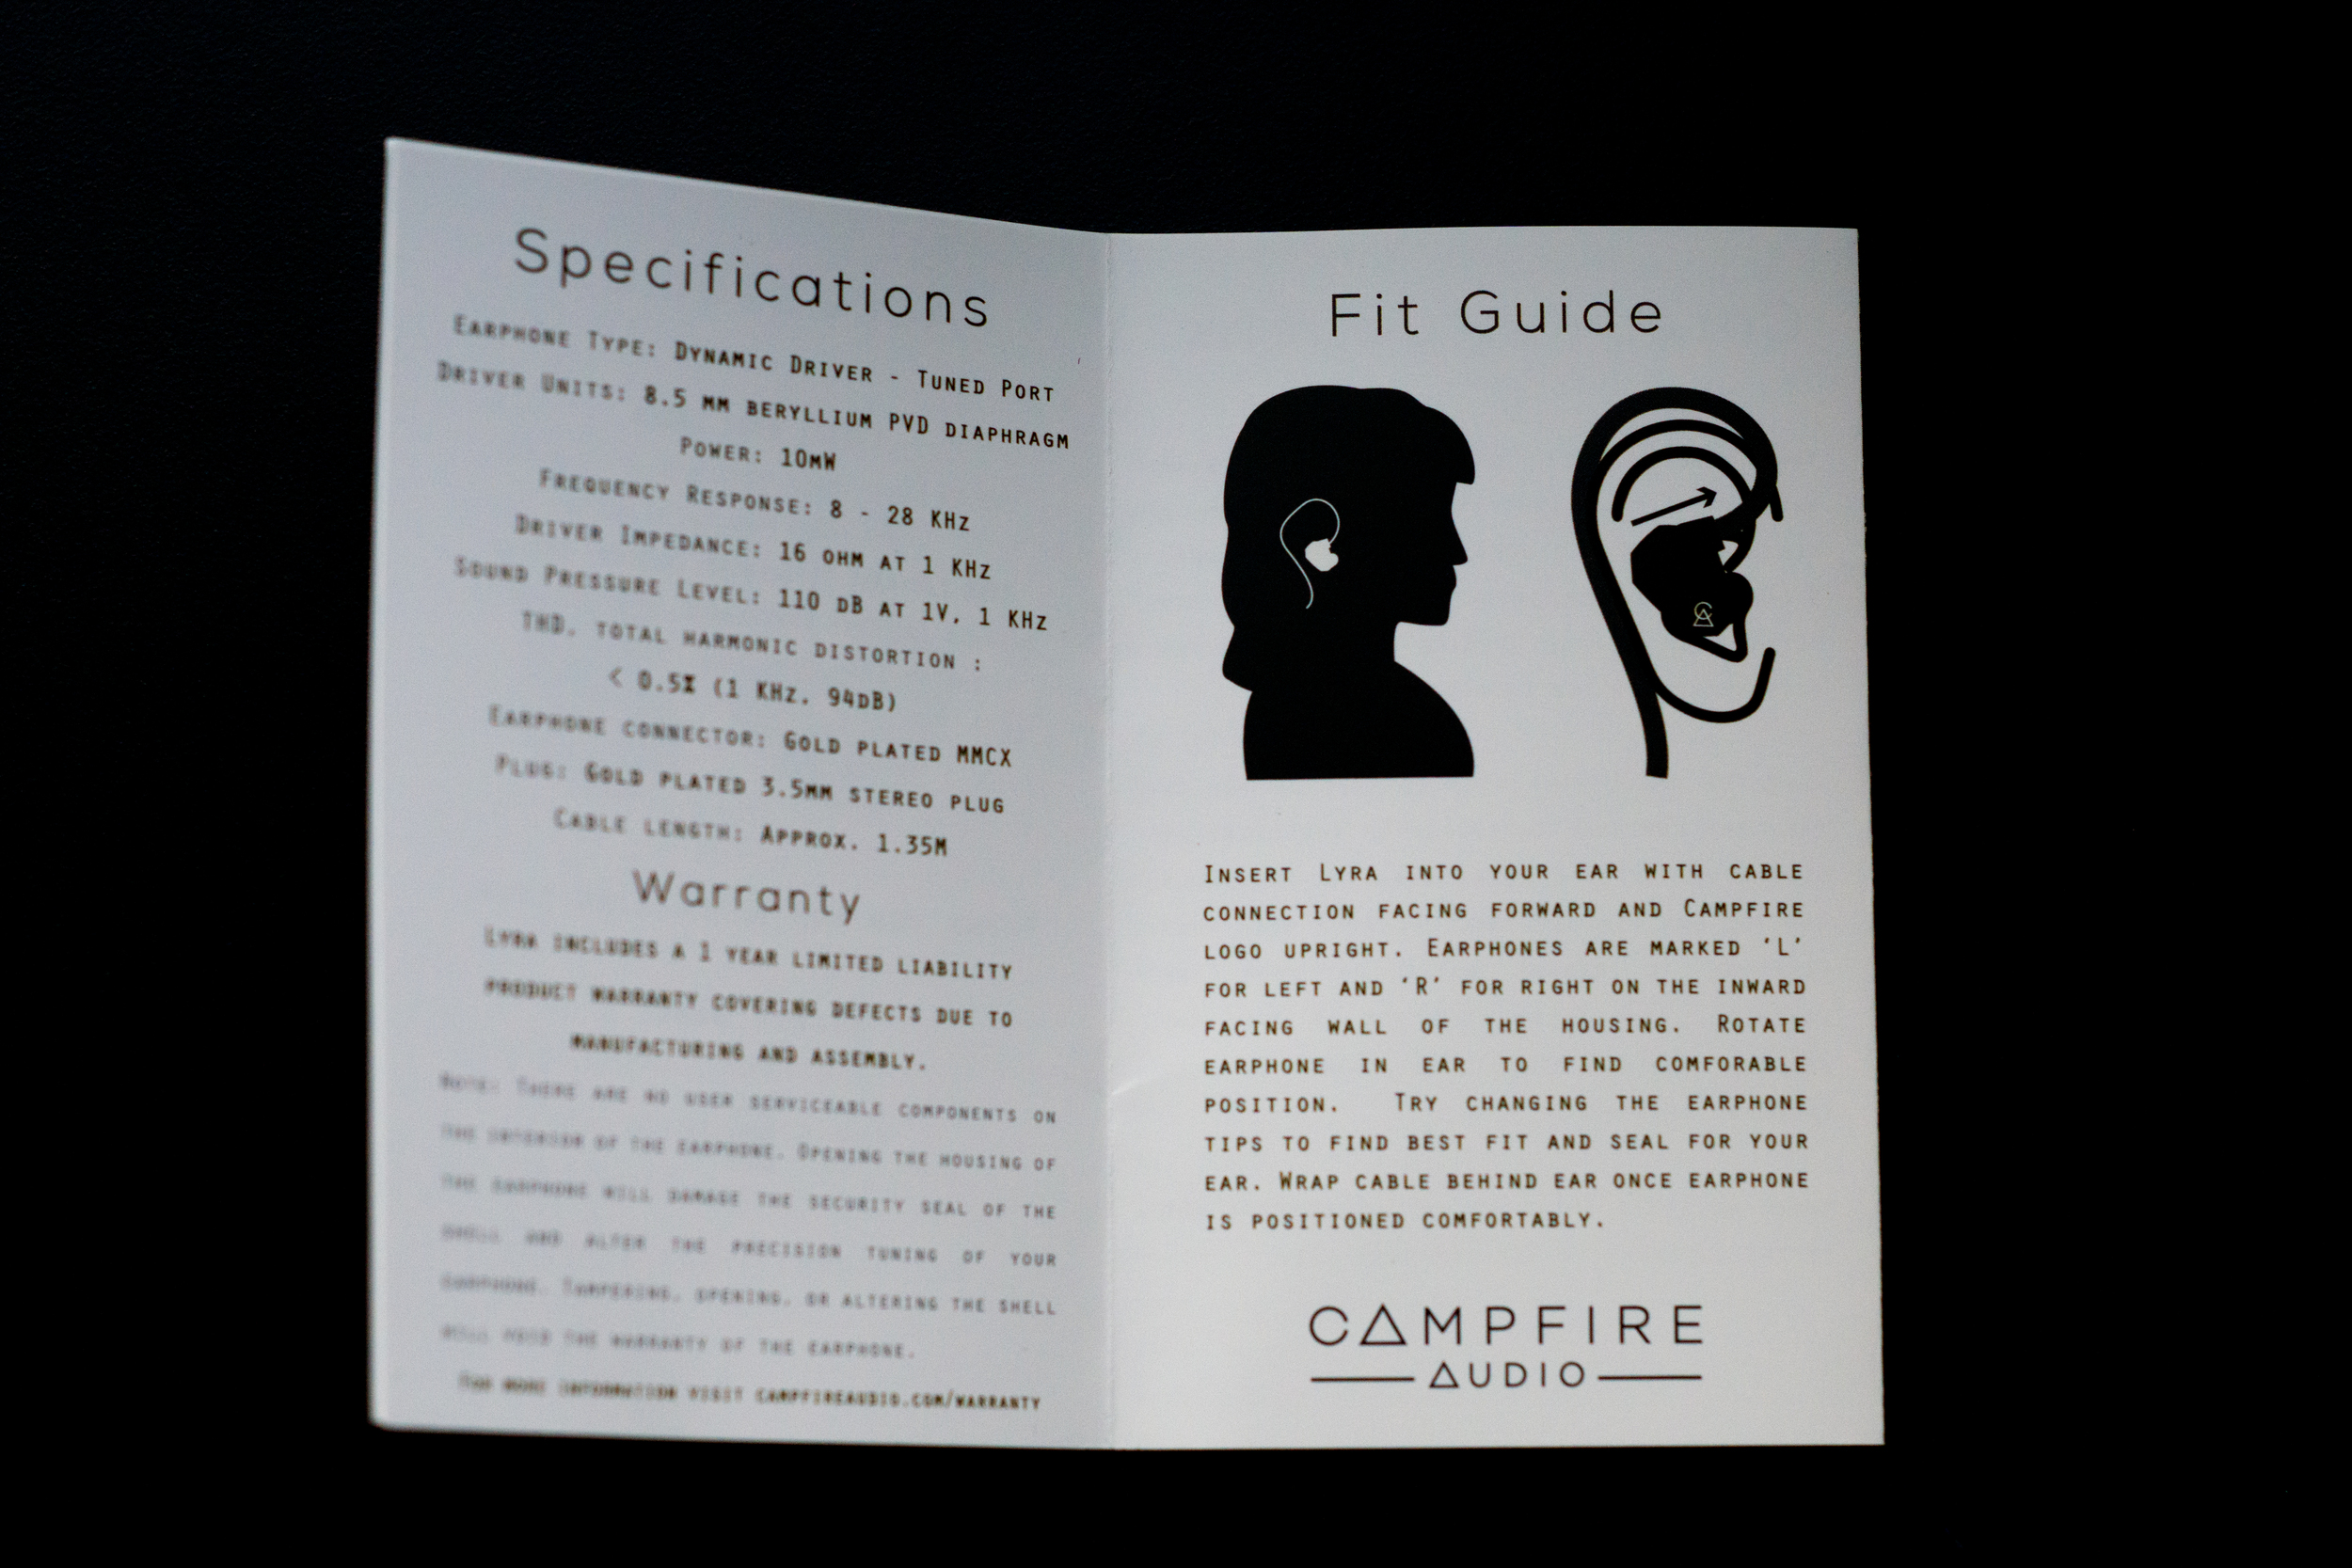 Campfire Audio Lyra - This guide helps user on how to get the best fit for your earphones.